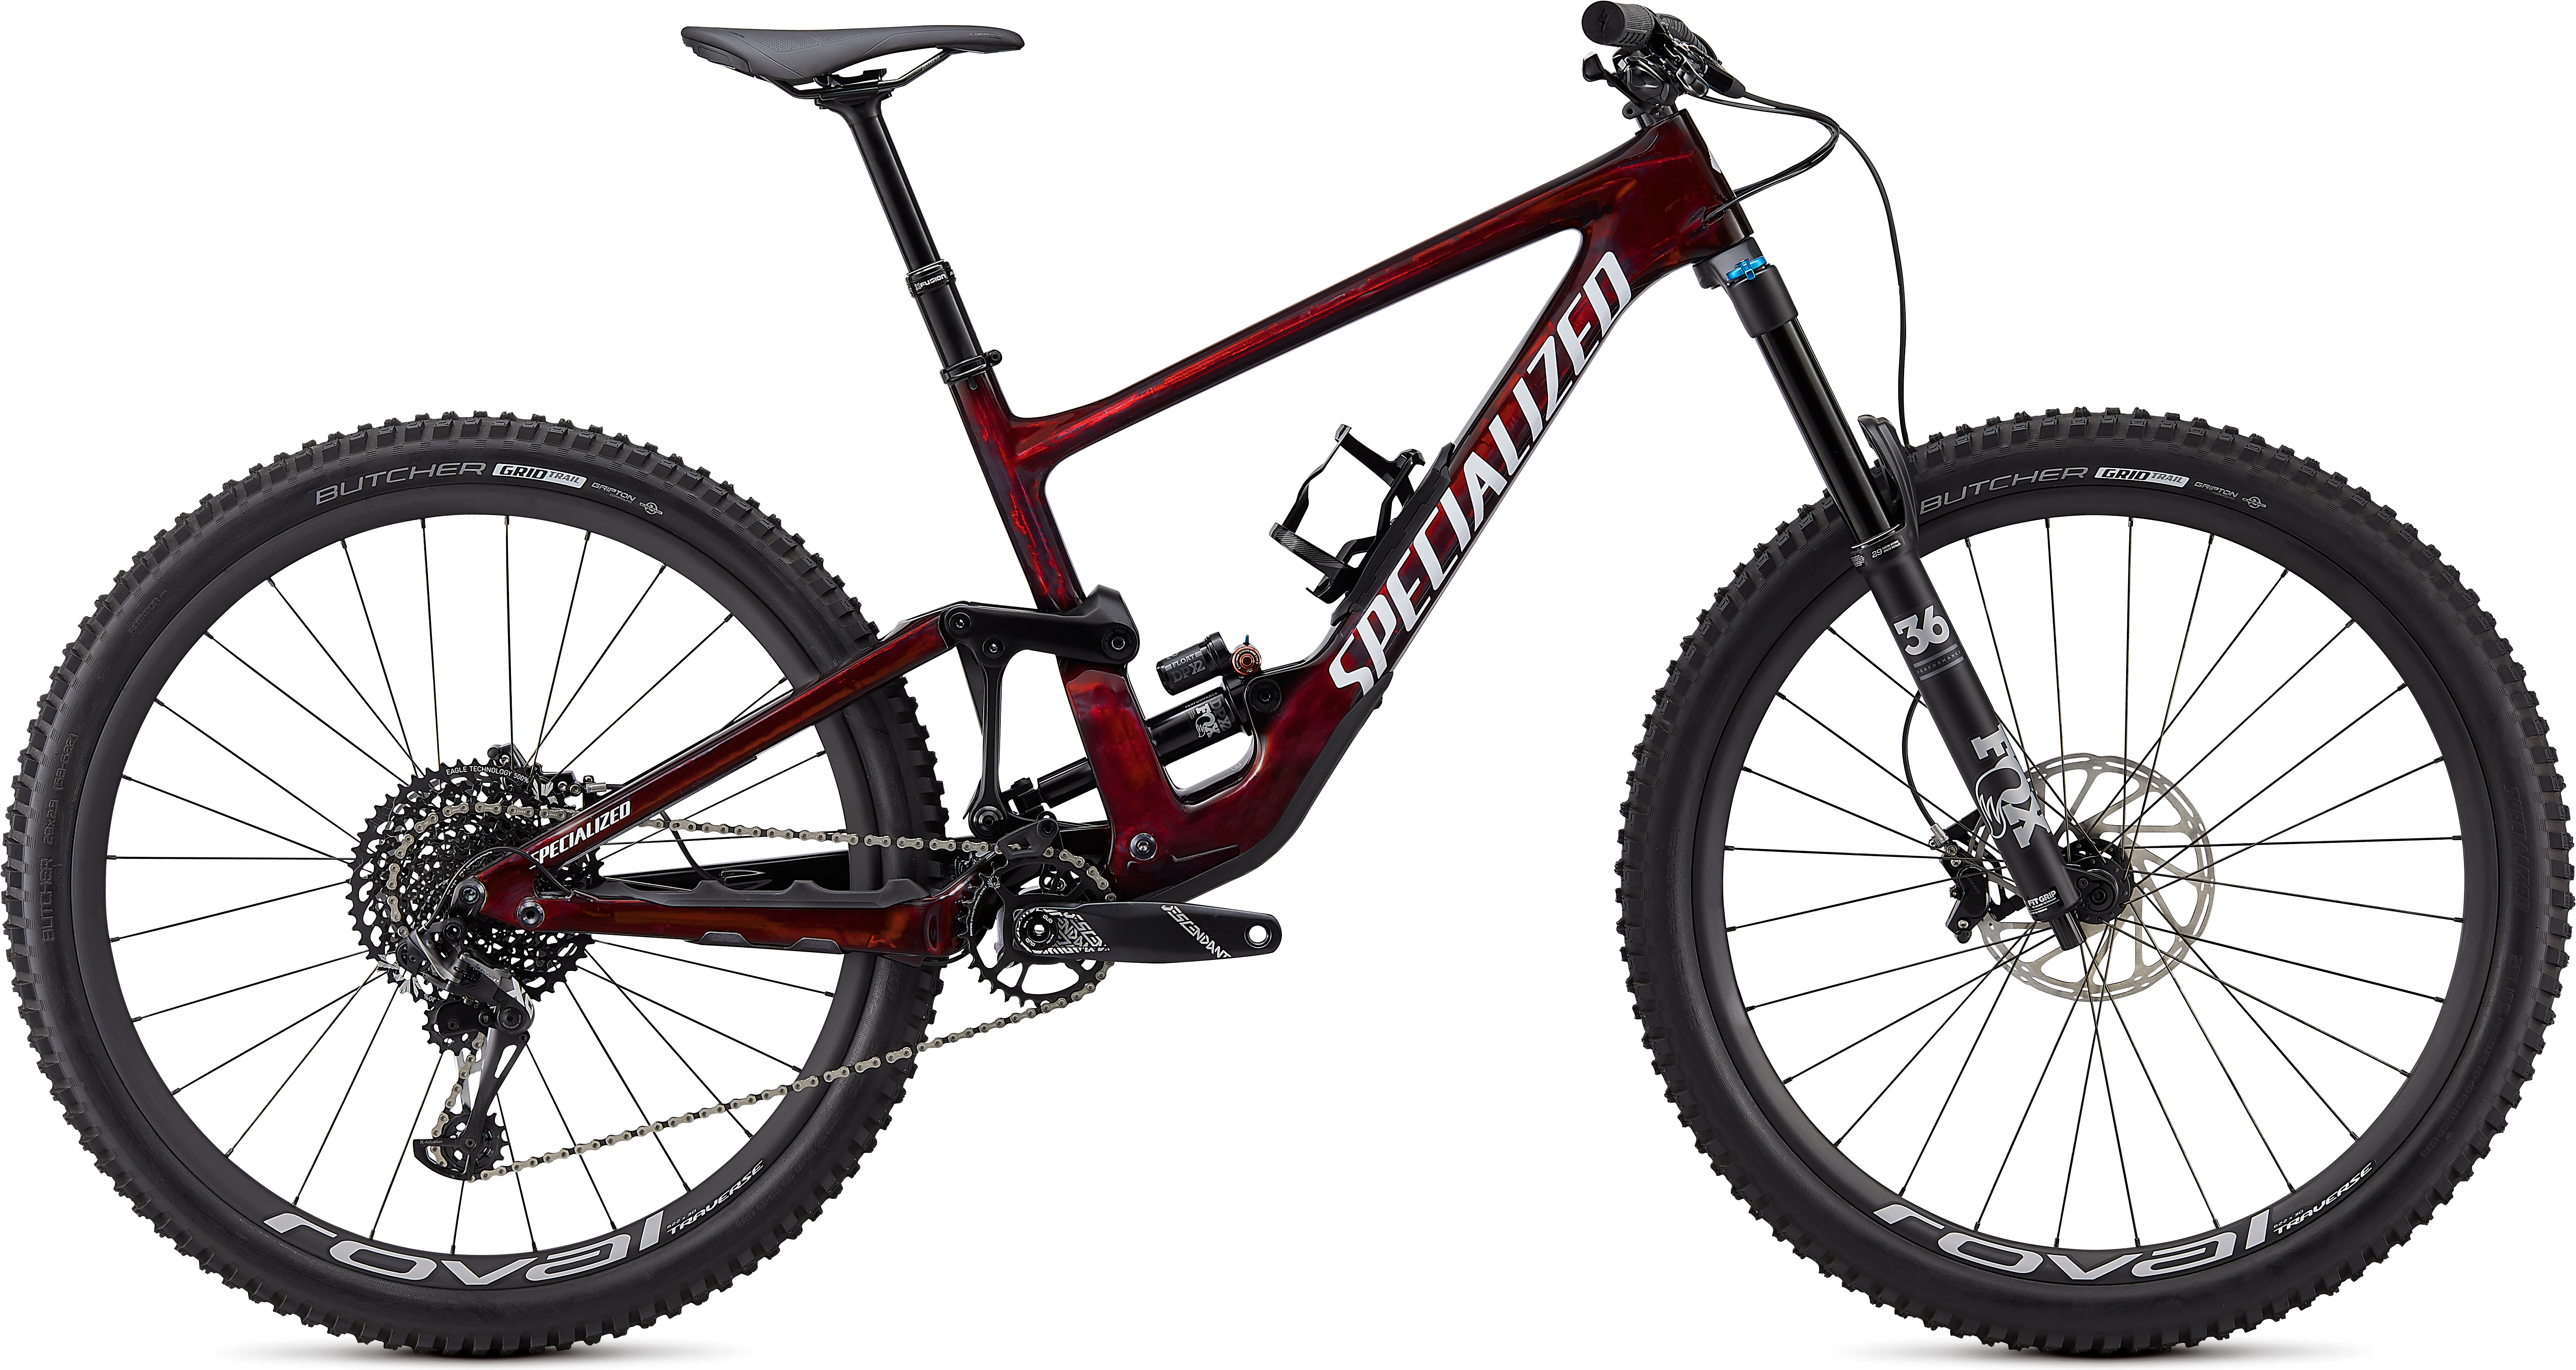 93620 31 ENDURO EXPERT CARBON 29 REDTNT DOVGRY BLK HERO 1